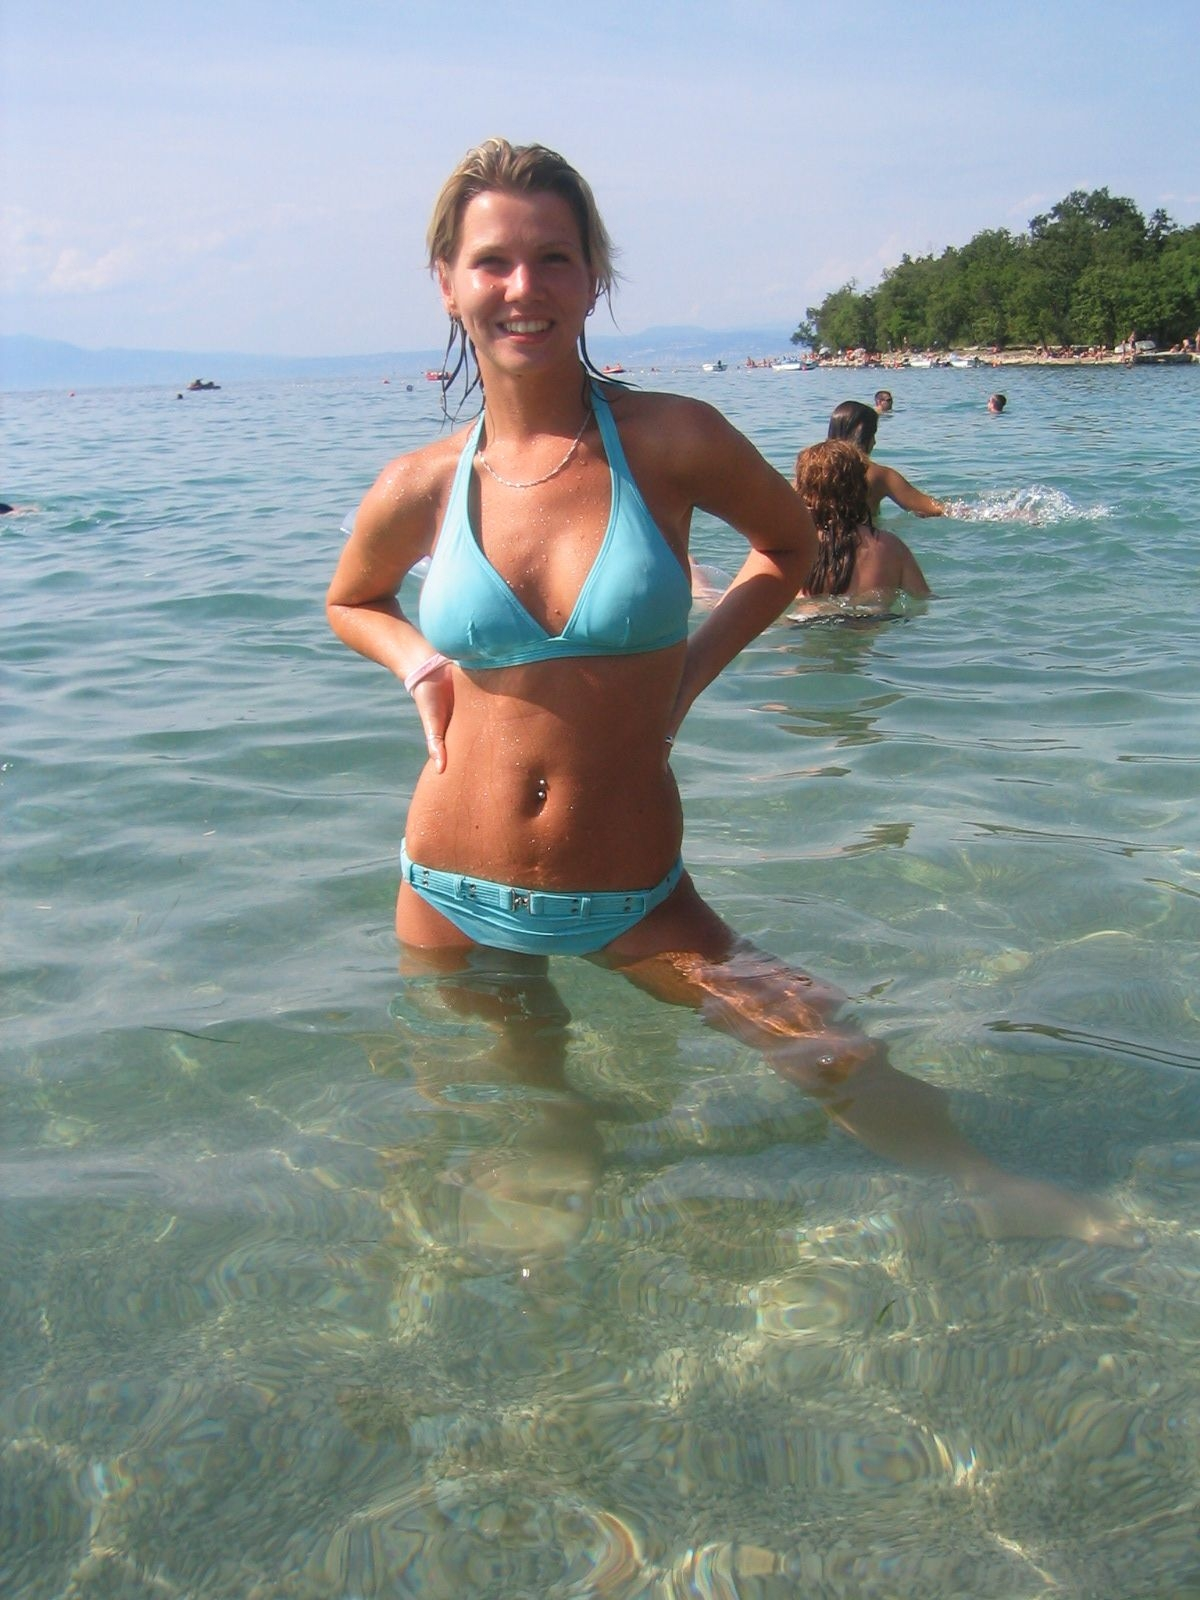 Cute Busty Blonde Enjoying Her Topless Vacation | Gallery Porn Girls: tangocupcakees.blogspot.in/2011/06/cute-busty-blonde-enjoying-her...